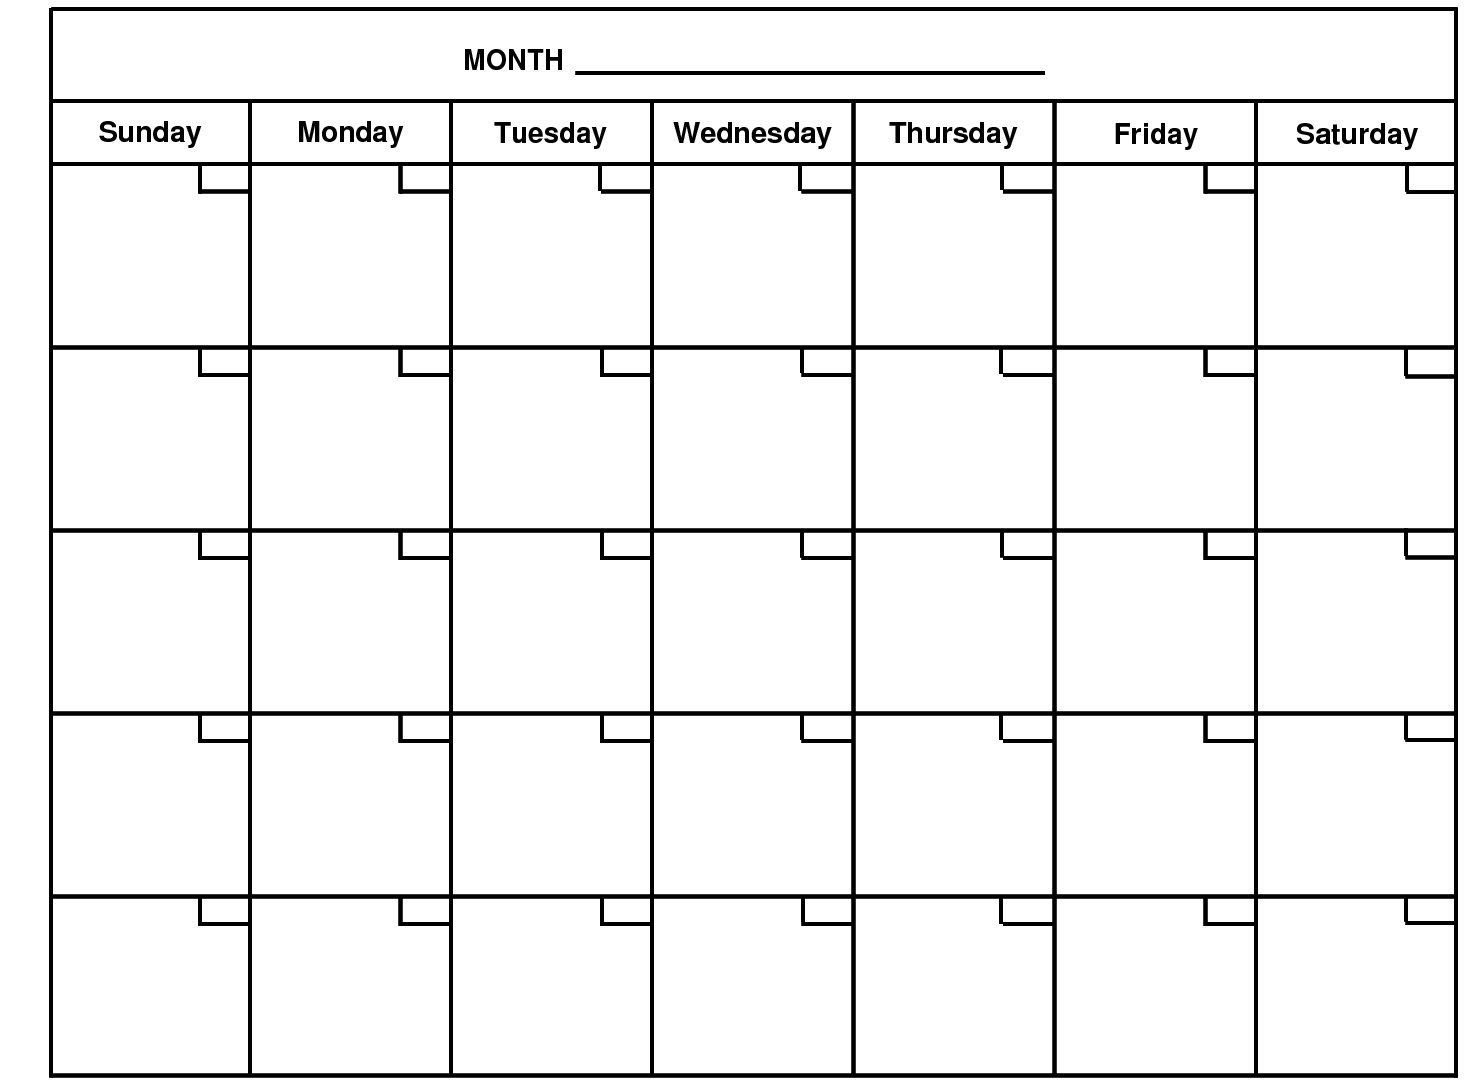 2020 Monthly Calendar Template Word – Google Search | Free 8X11 Full Page Weekly Calendar